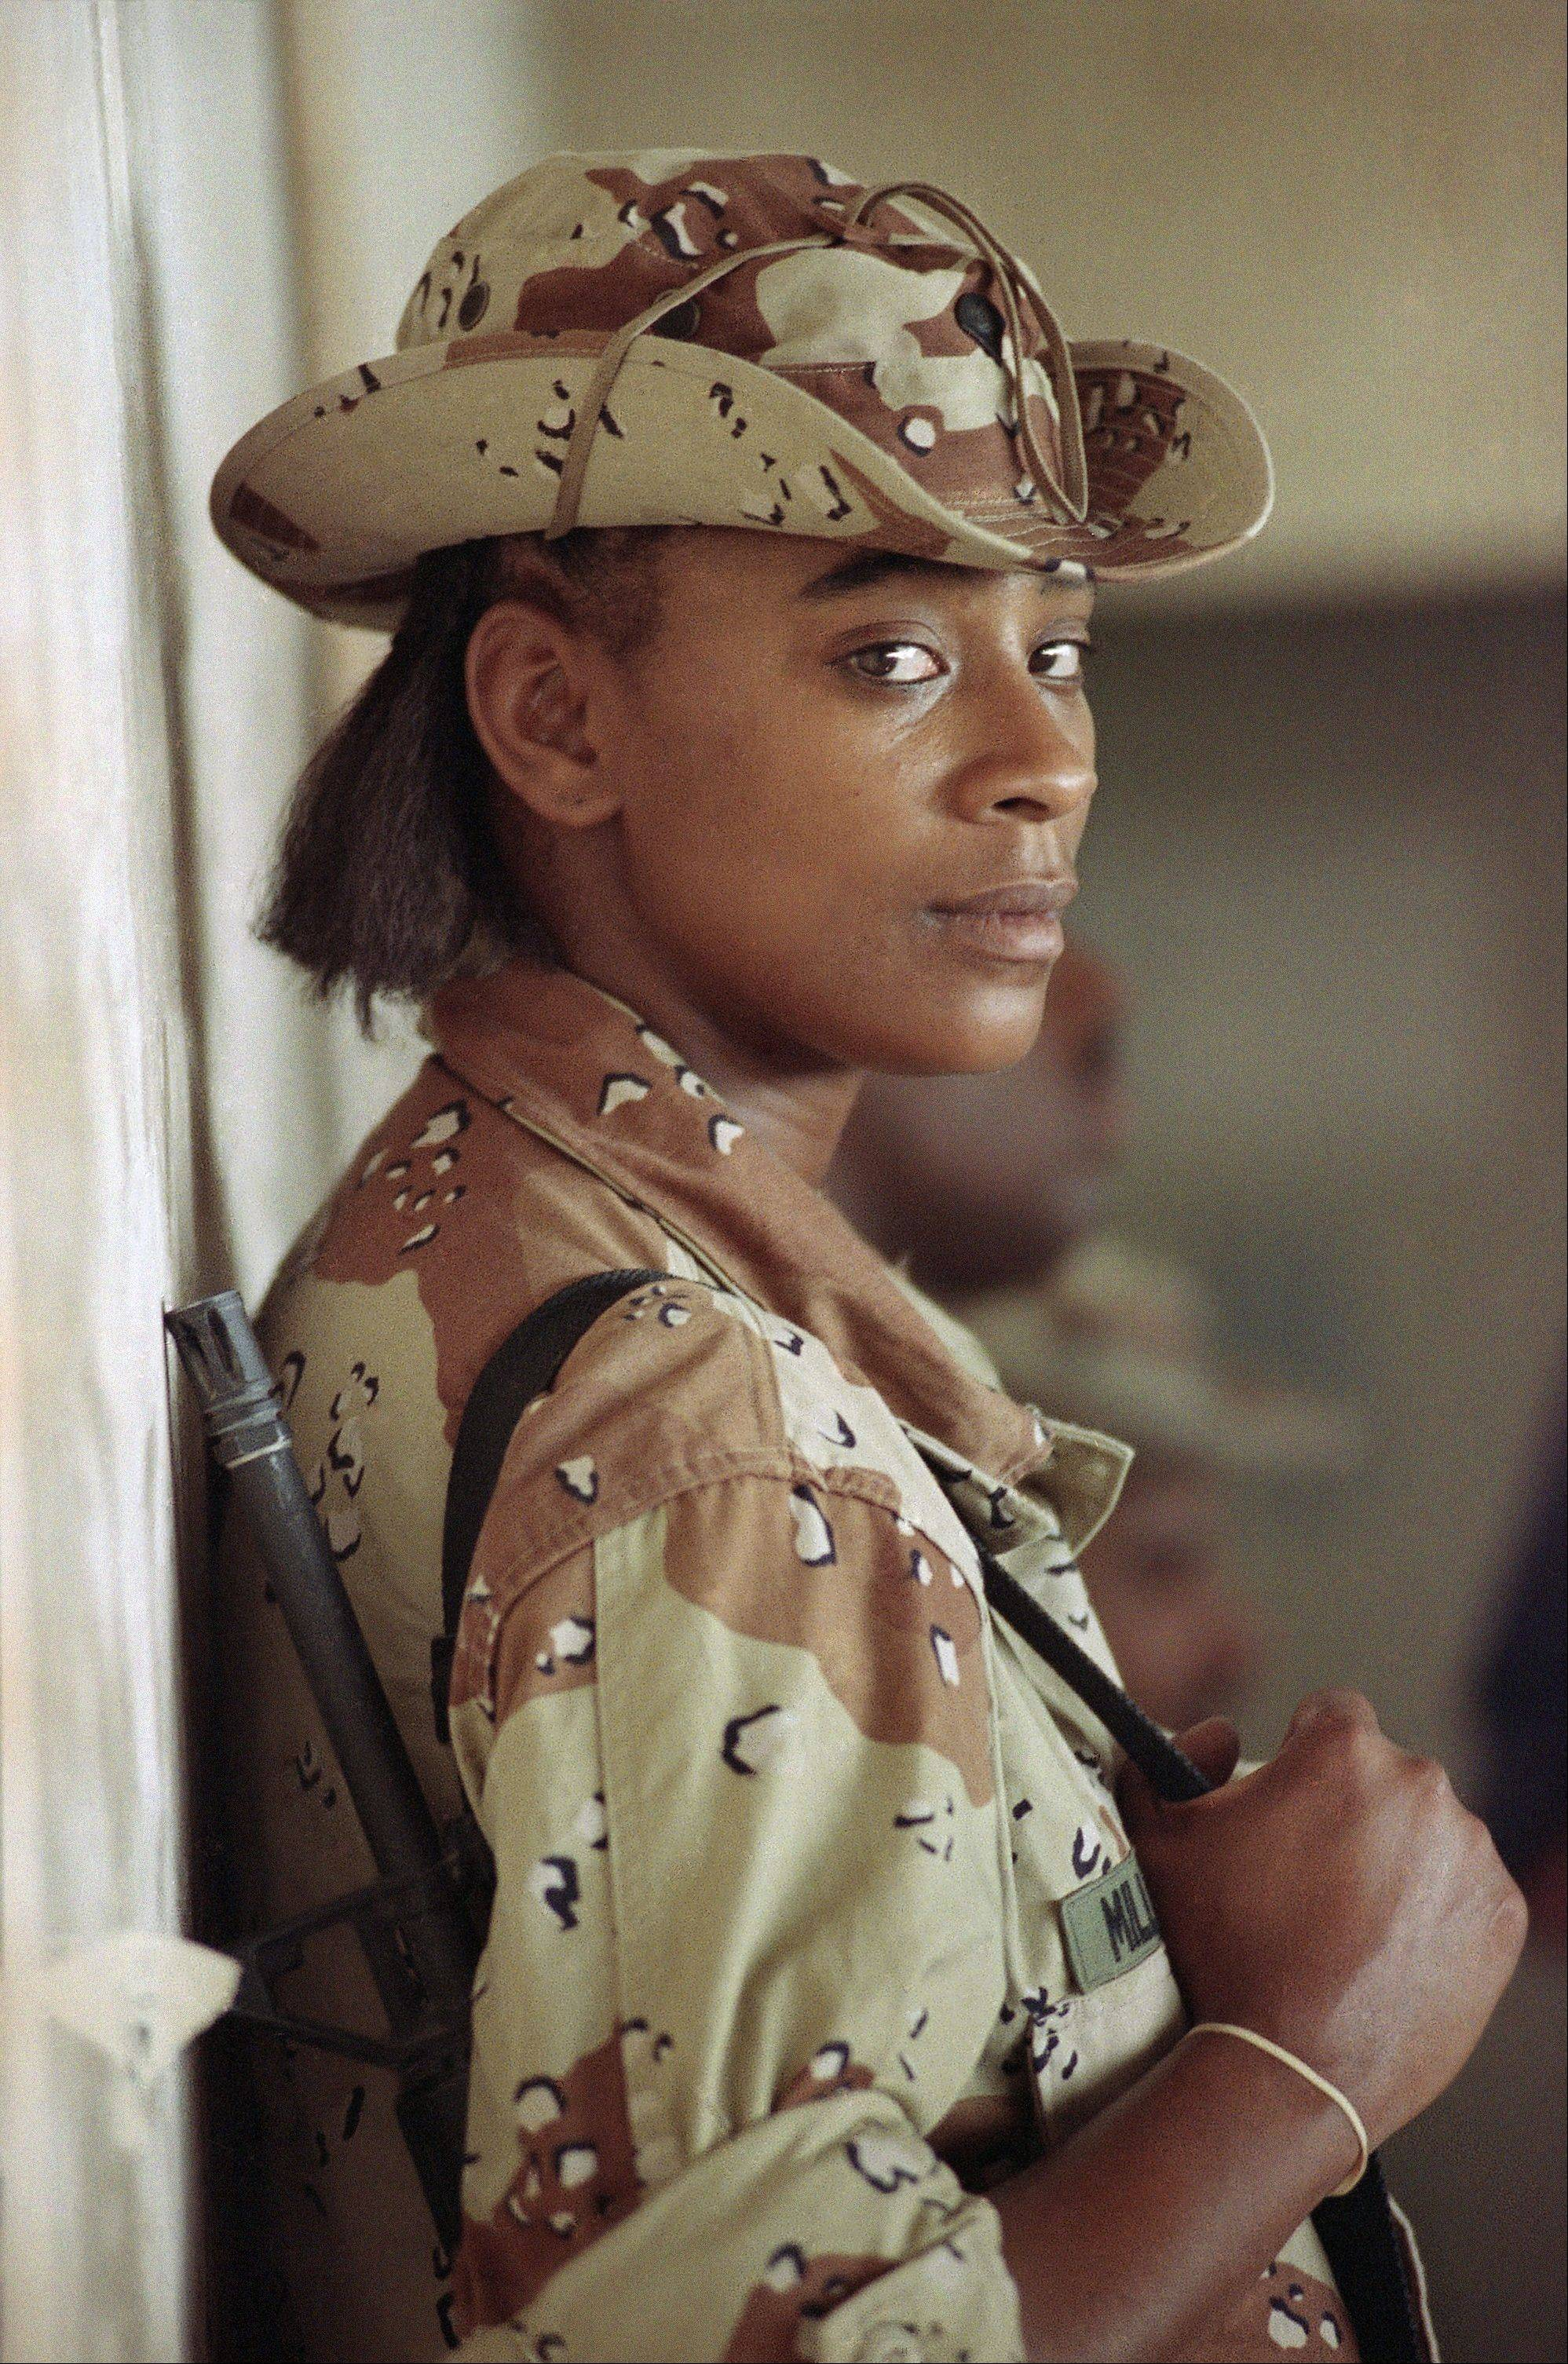 Sept. 3, 1990: U.S. Army Spec. Tanya Miller of New York., leans against a wall on an air base in Saudi Arabia. Miller was in Saudi Arabia with the 101st Airborne Divsion in support of Operation Desert Shield.